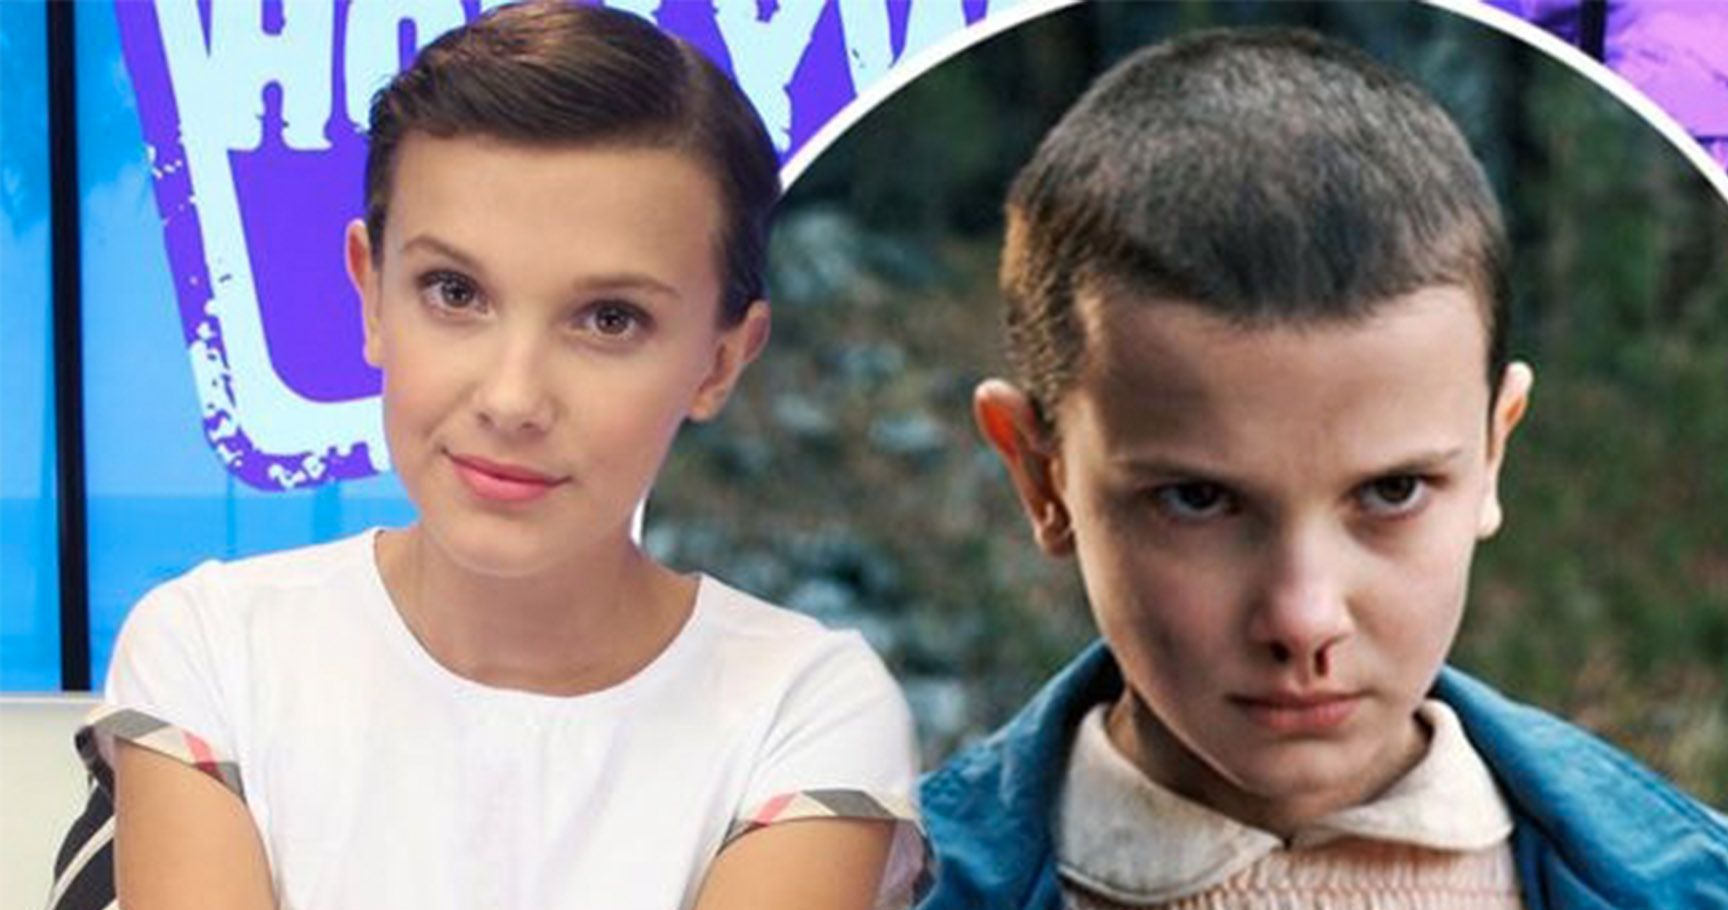 15 Reasons Why Millie Bobby Brown Is Pretty Much The Best Child Actress Of Our Time